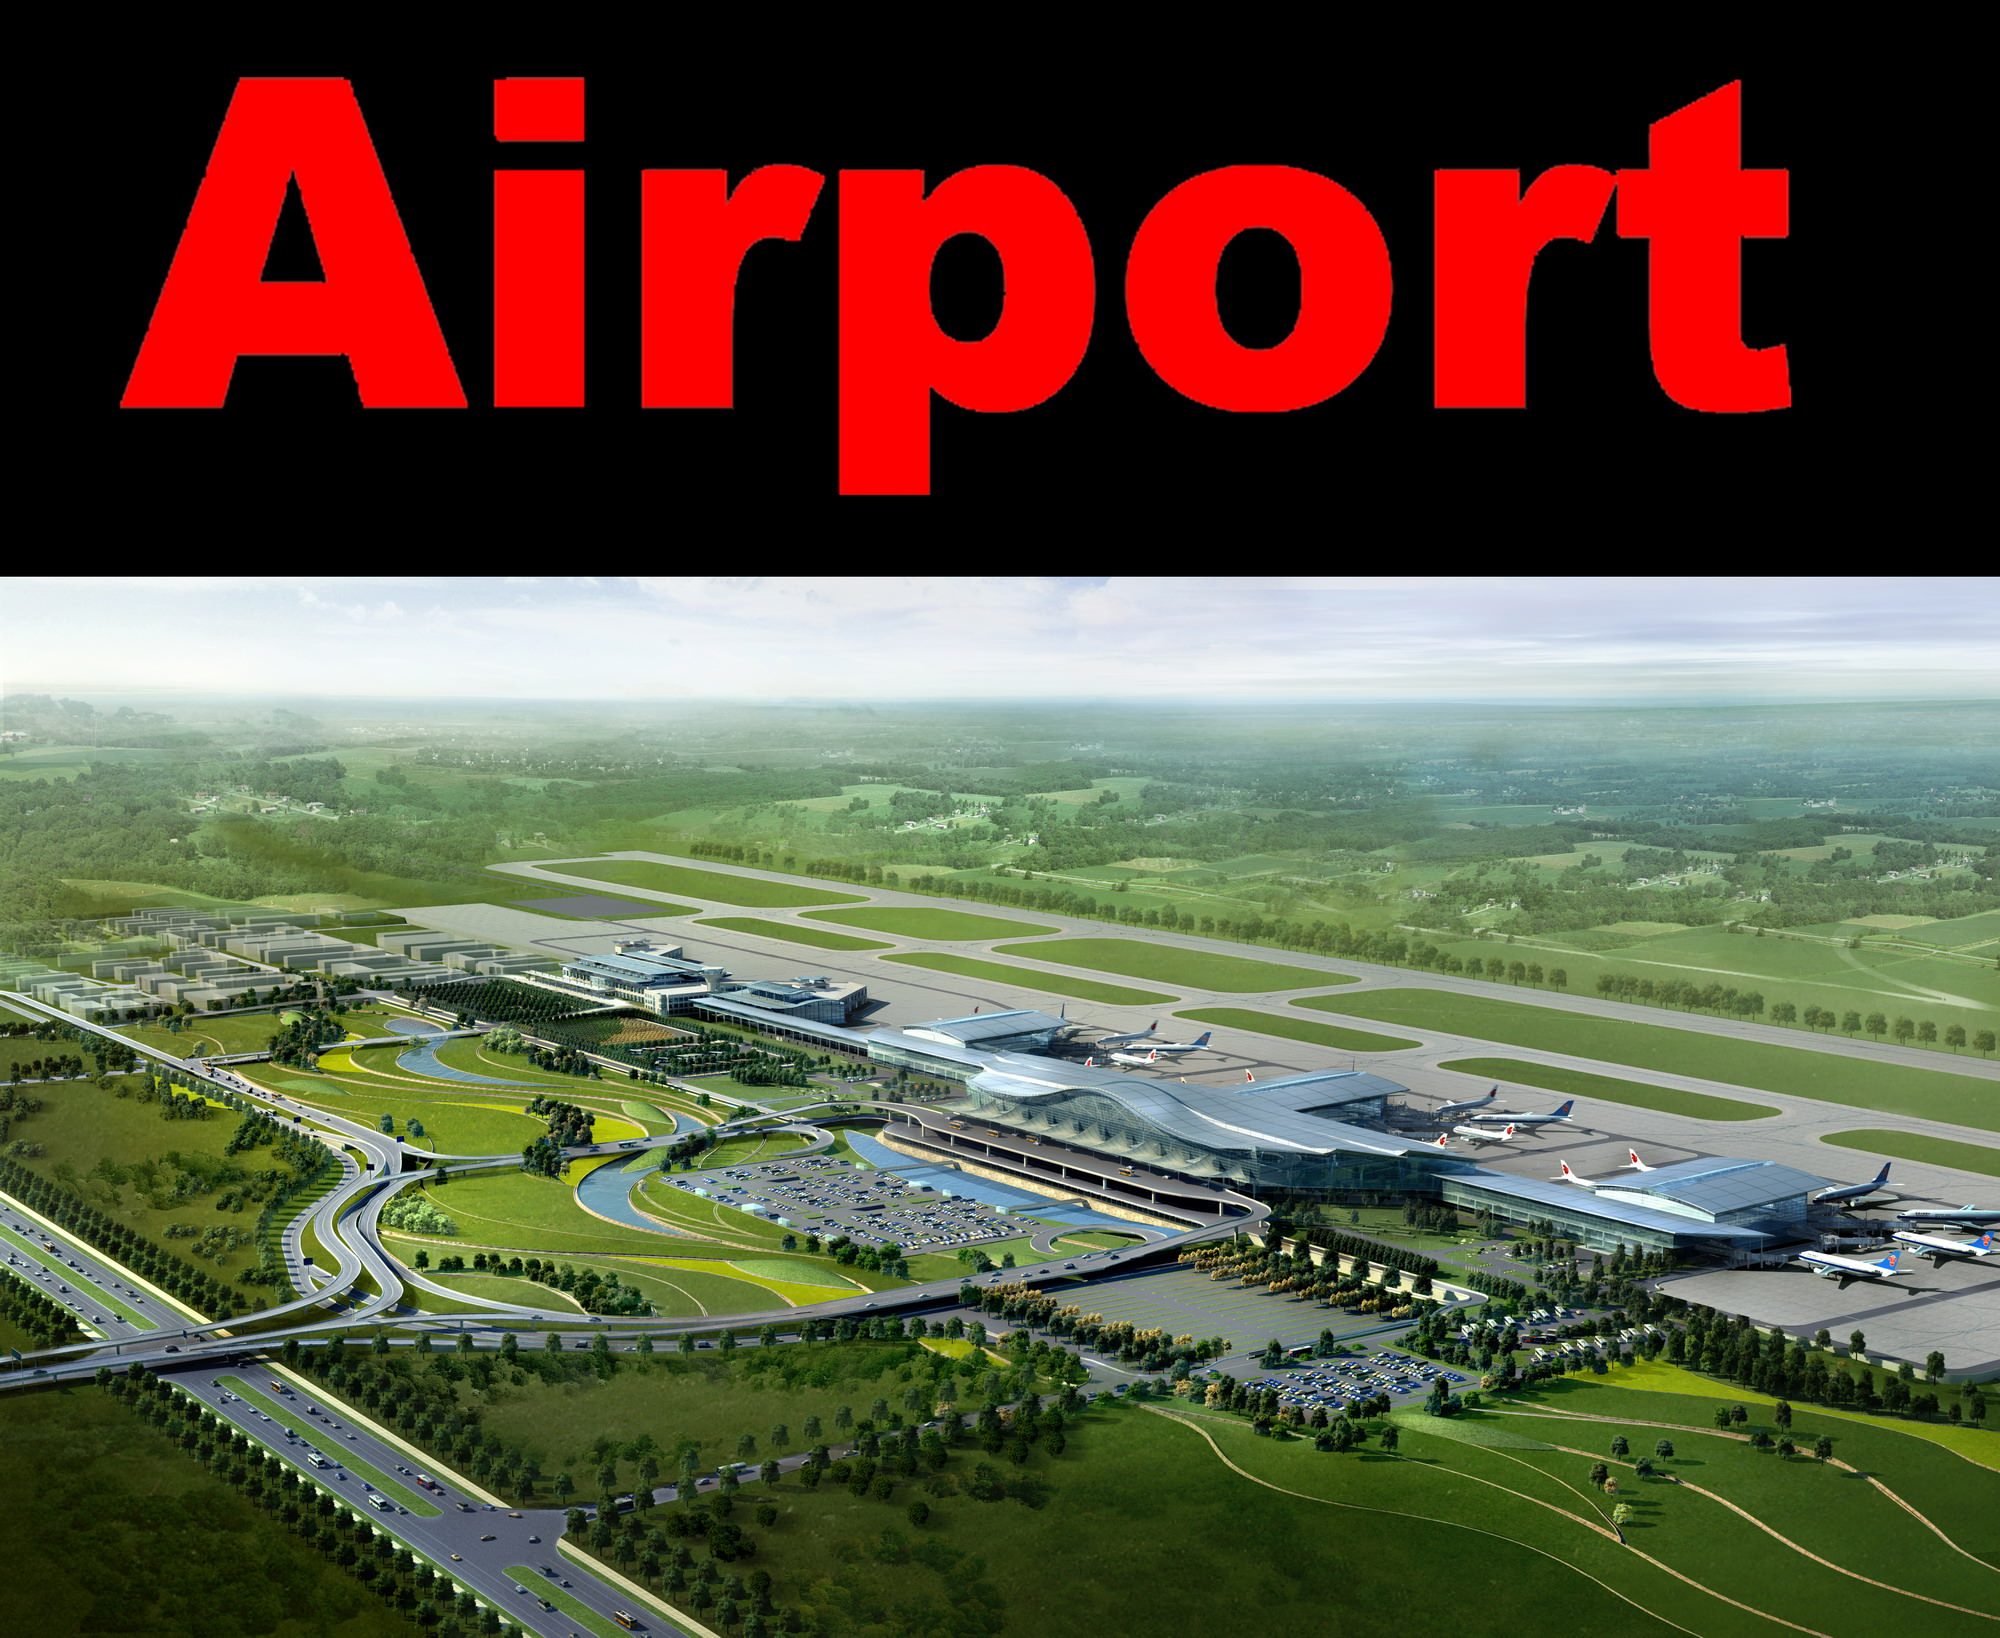 airport infrastructures As the world's top civil infrastructure company, bechtel knows rail systems, roads, bridges, aviation facilities, and ports see our areas of expertise here.